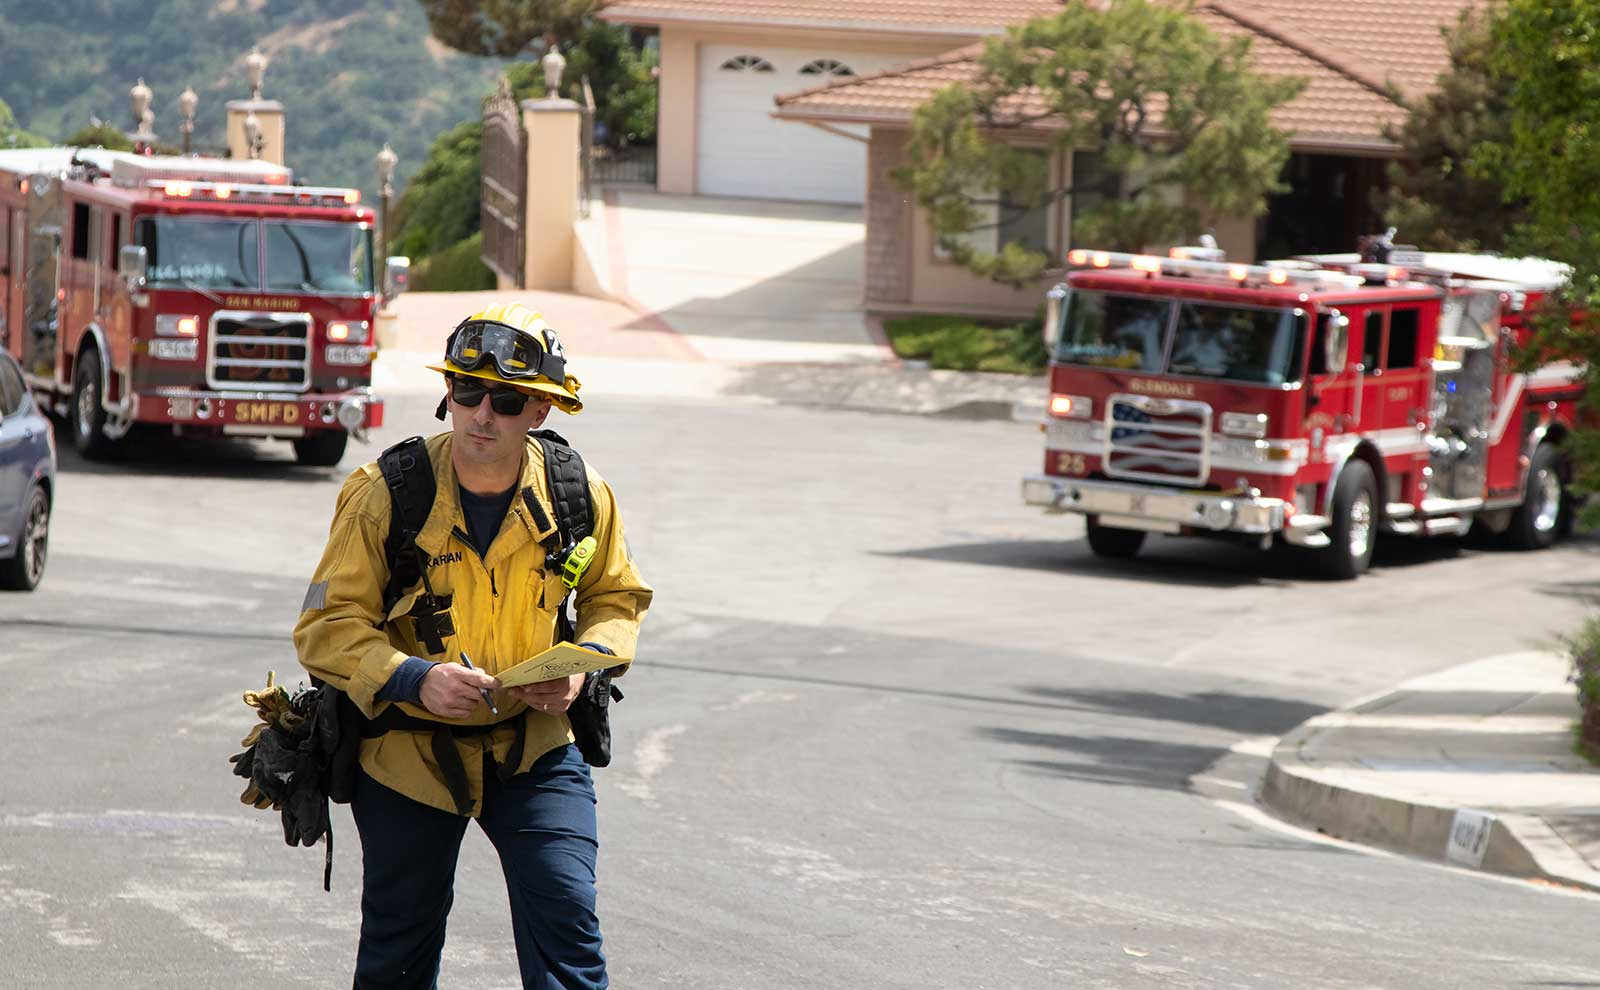 Firefighters canvas neighborhood in wildfire drill.